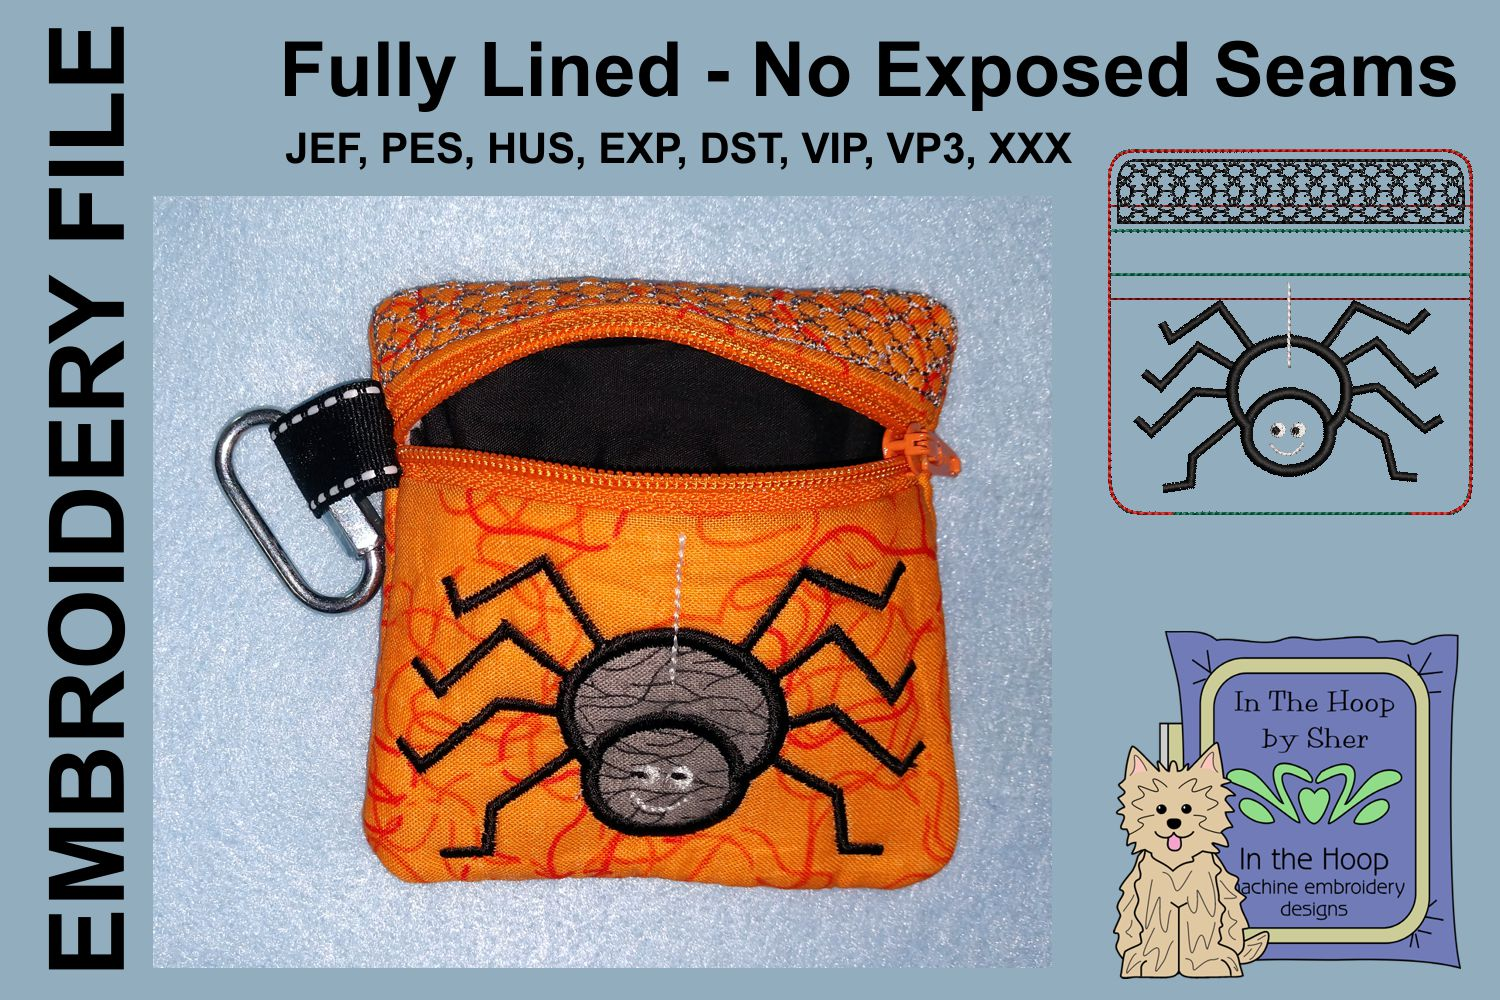 Spider Mini Zipper Bag / Fully Lined, 4X4 HOOP example image 2